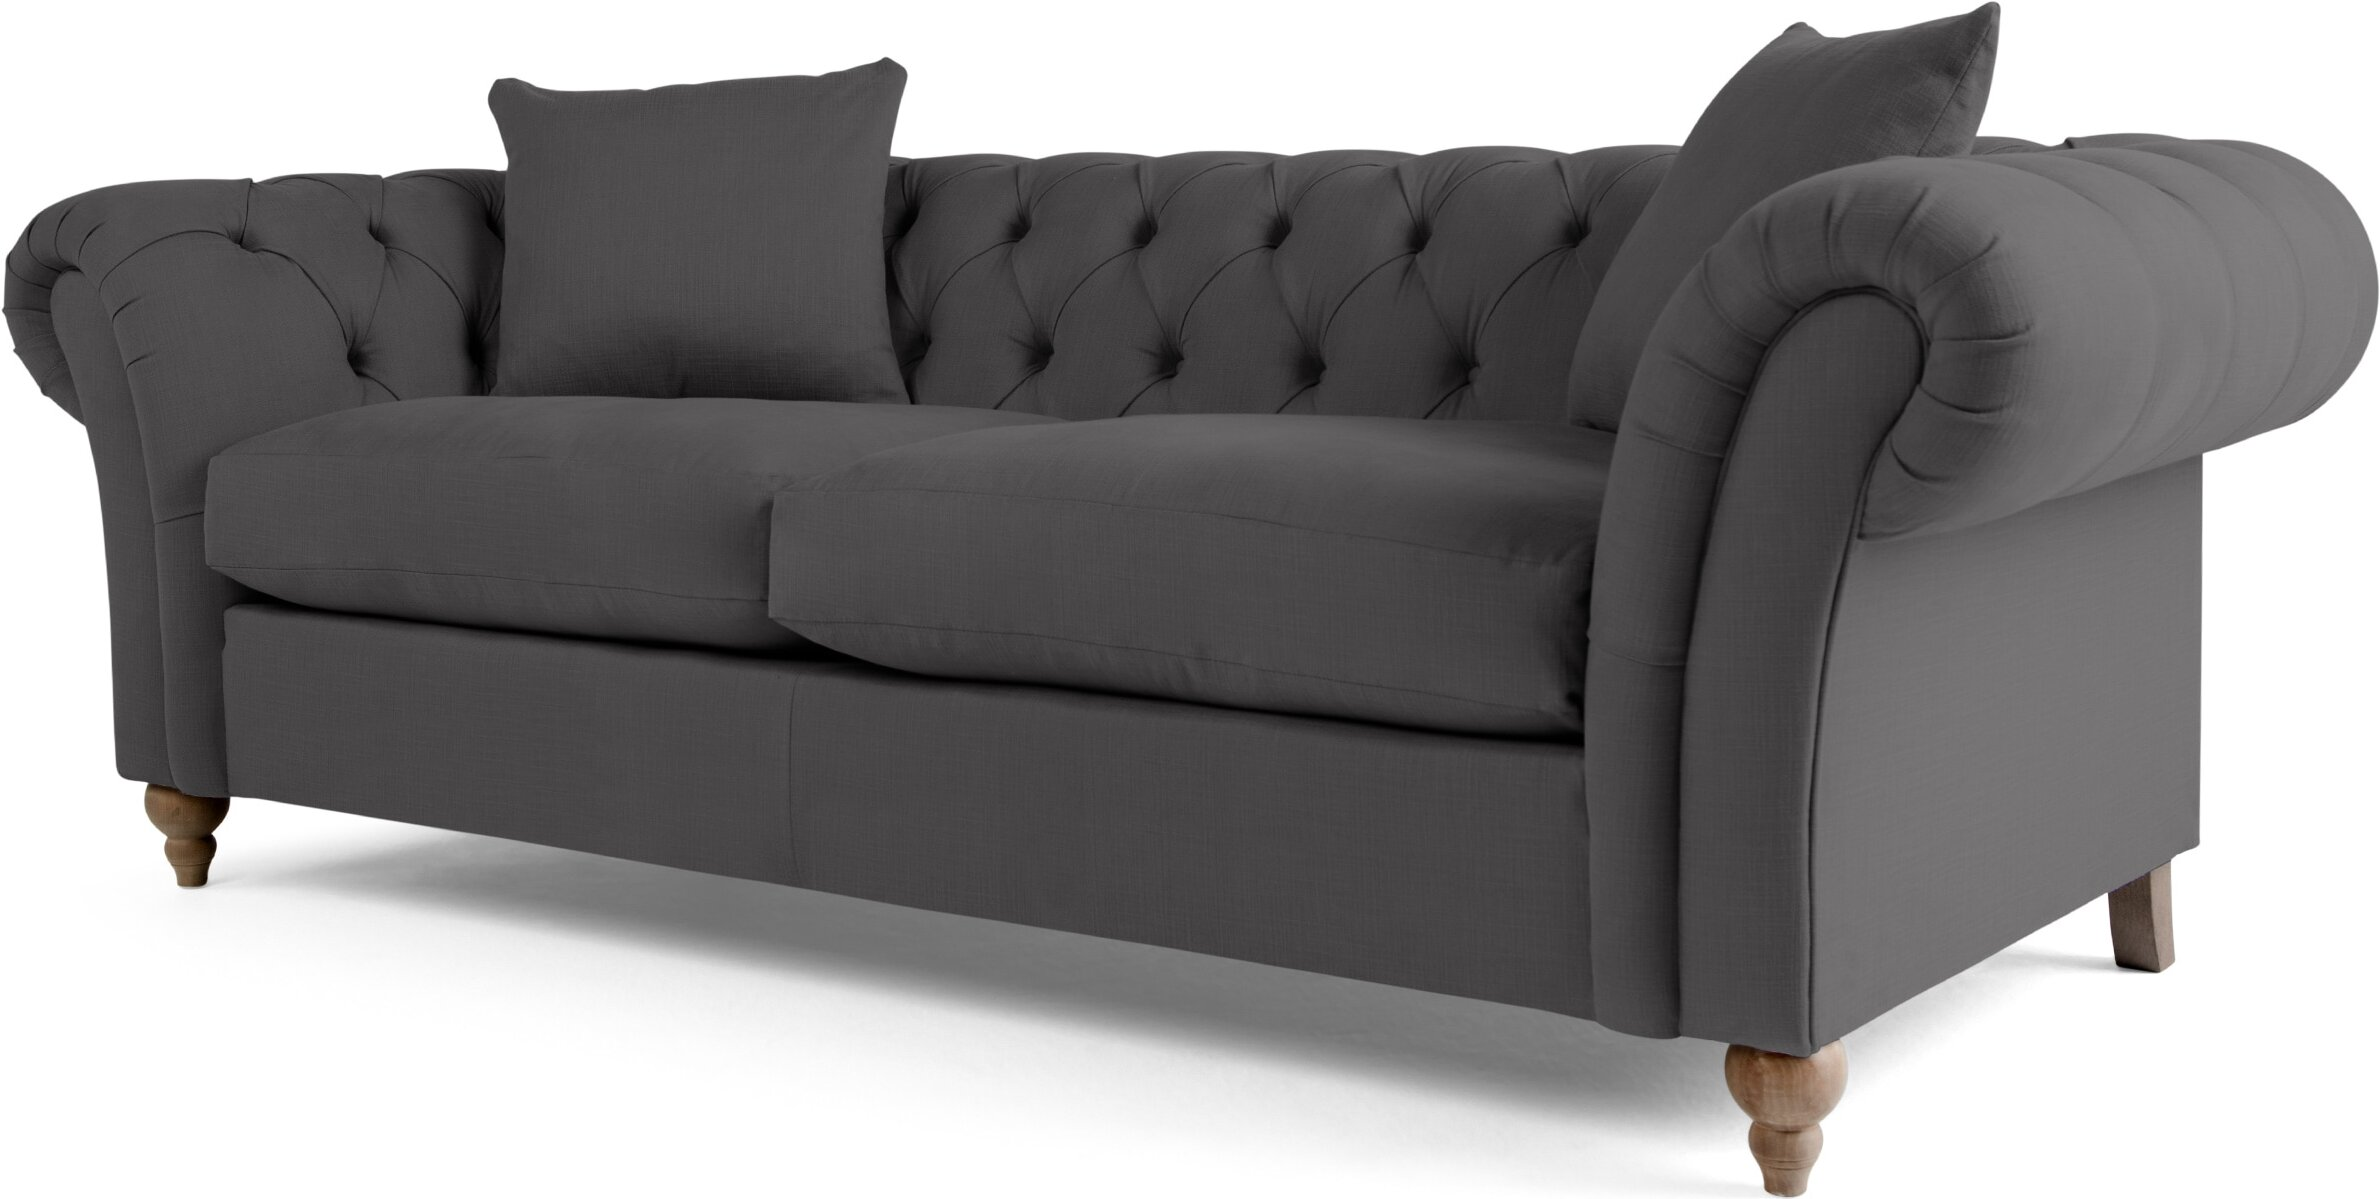 Buy cheap chesterfield sofa compare sofas prices for for Cheap sofa packages